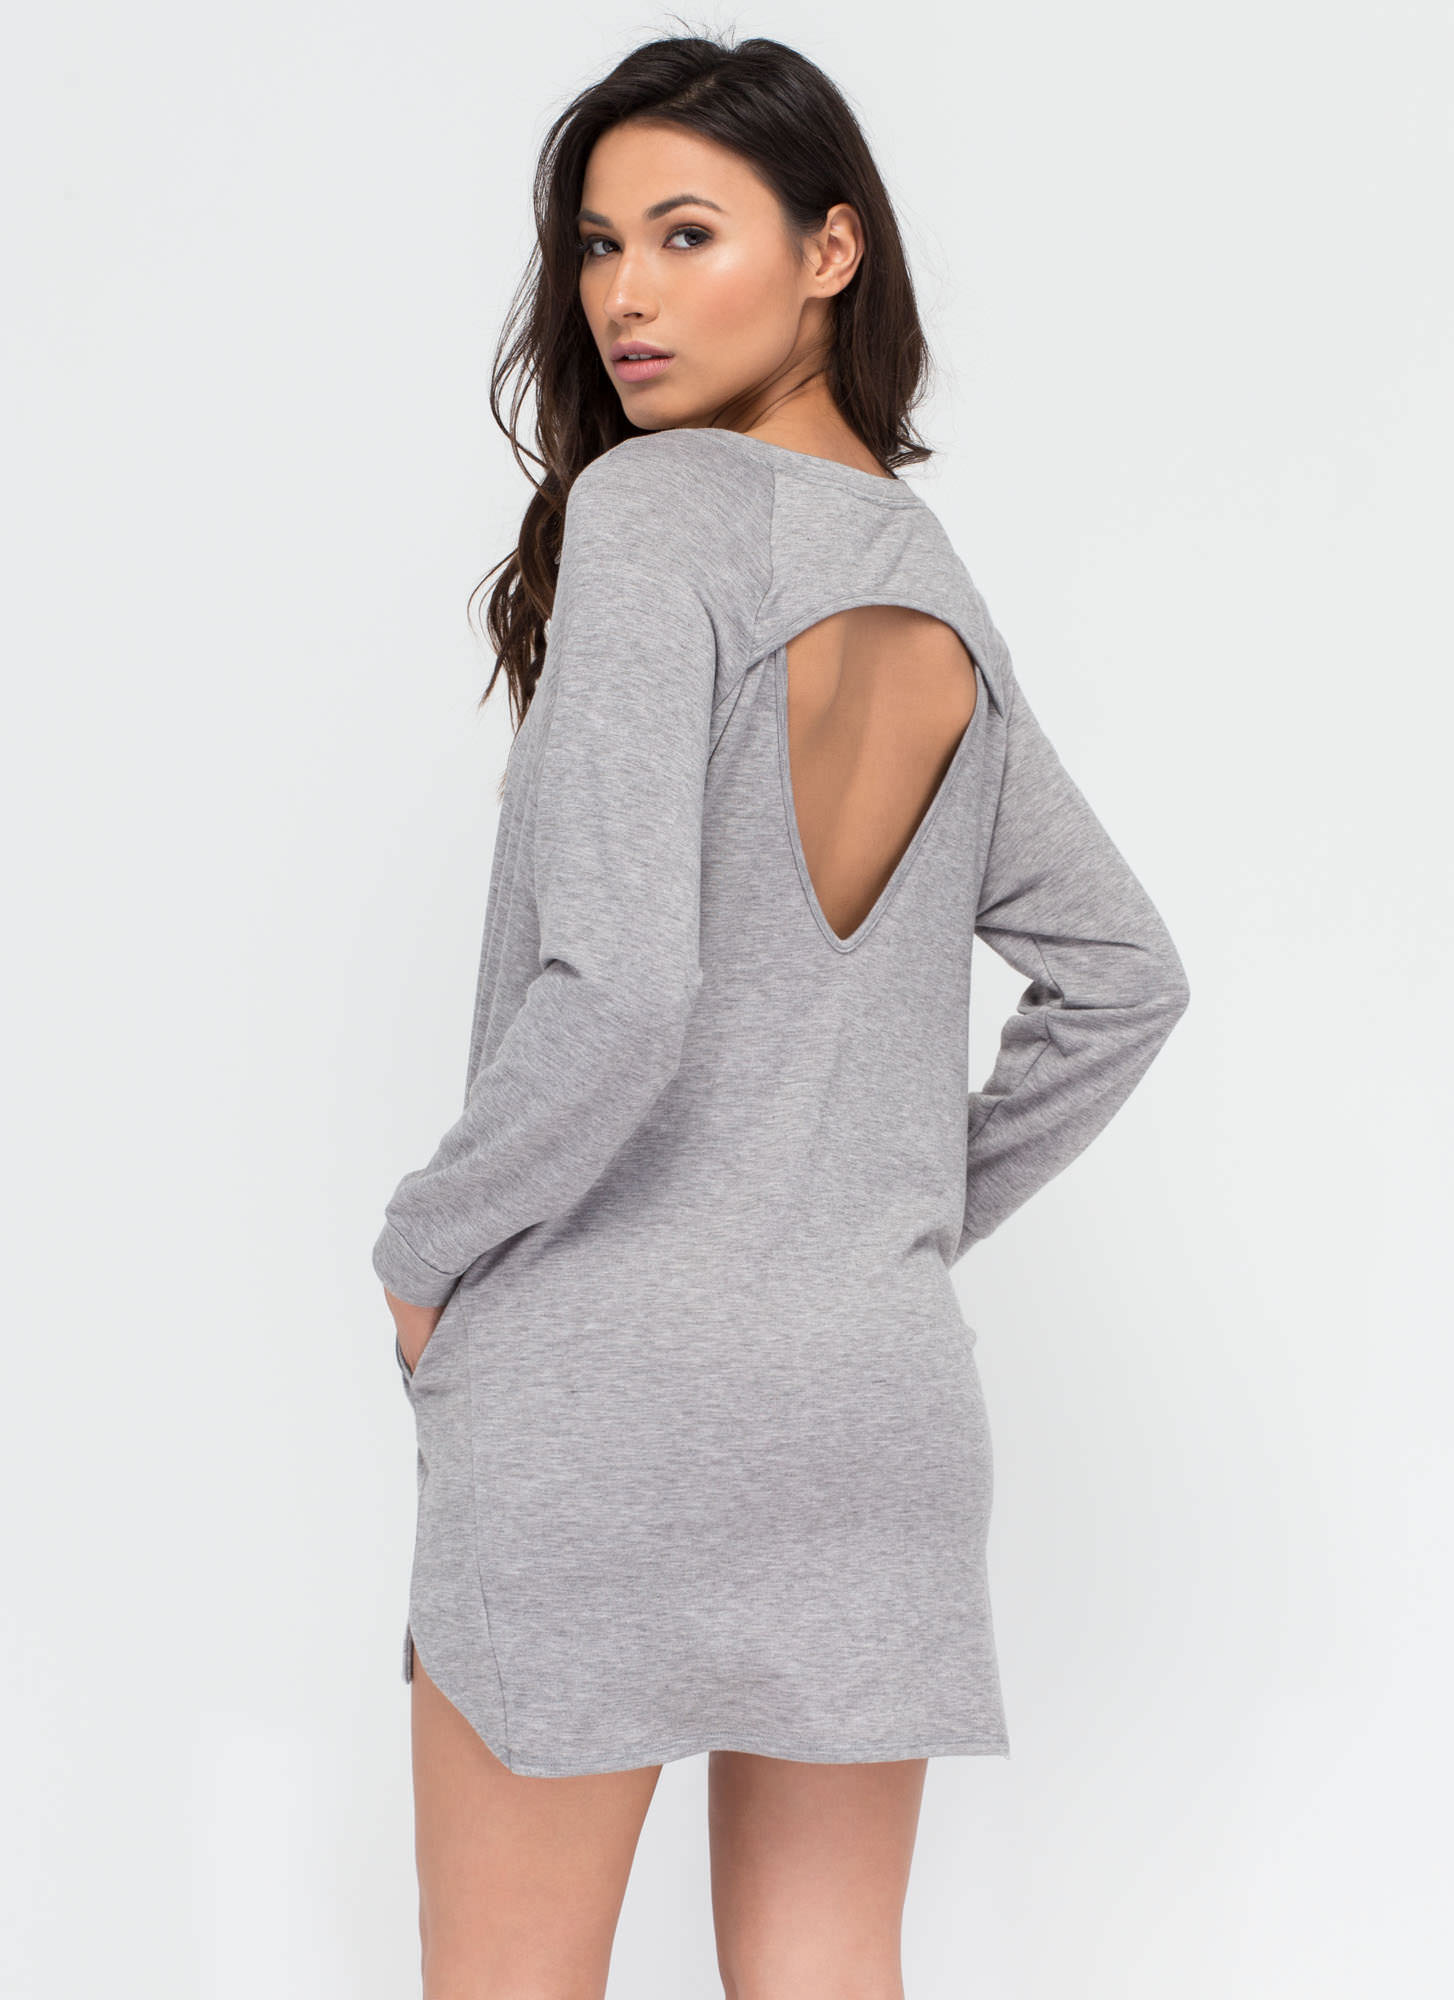 Lazy Sundays Cut-Out Sweatshirt Dress HGREY